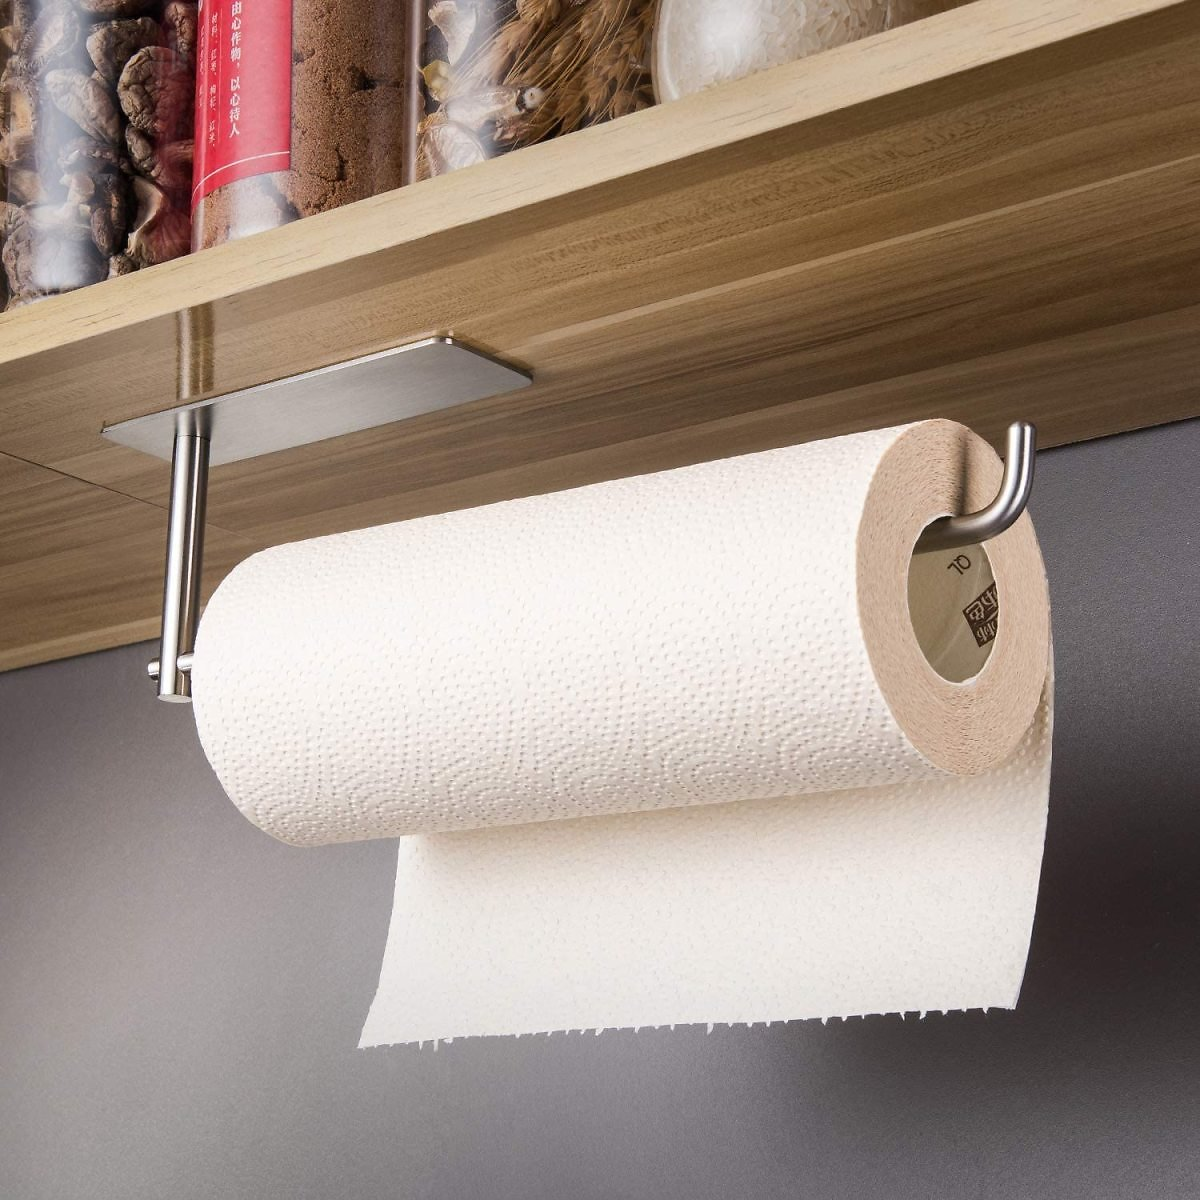 SUNTECH Paper Towel Holder Under Kitchen Cabinet - Self Adhesive Towel Paper Holder Stick On Wall, SUS304 Stainless Steel